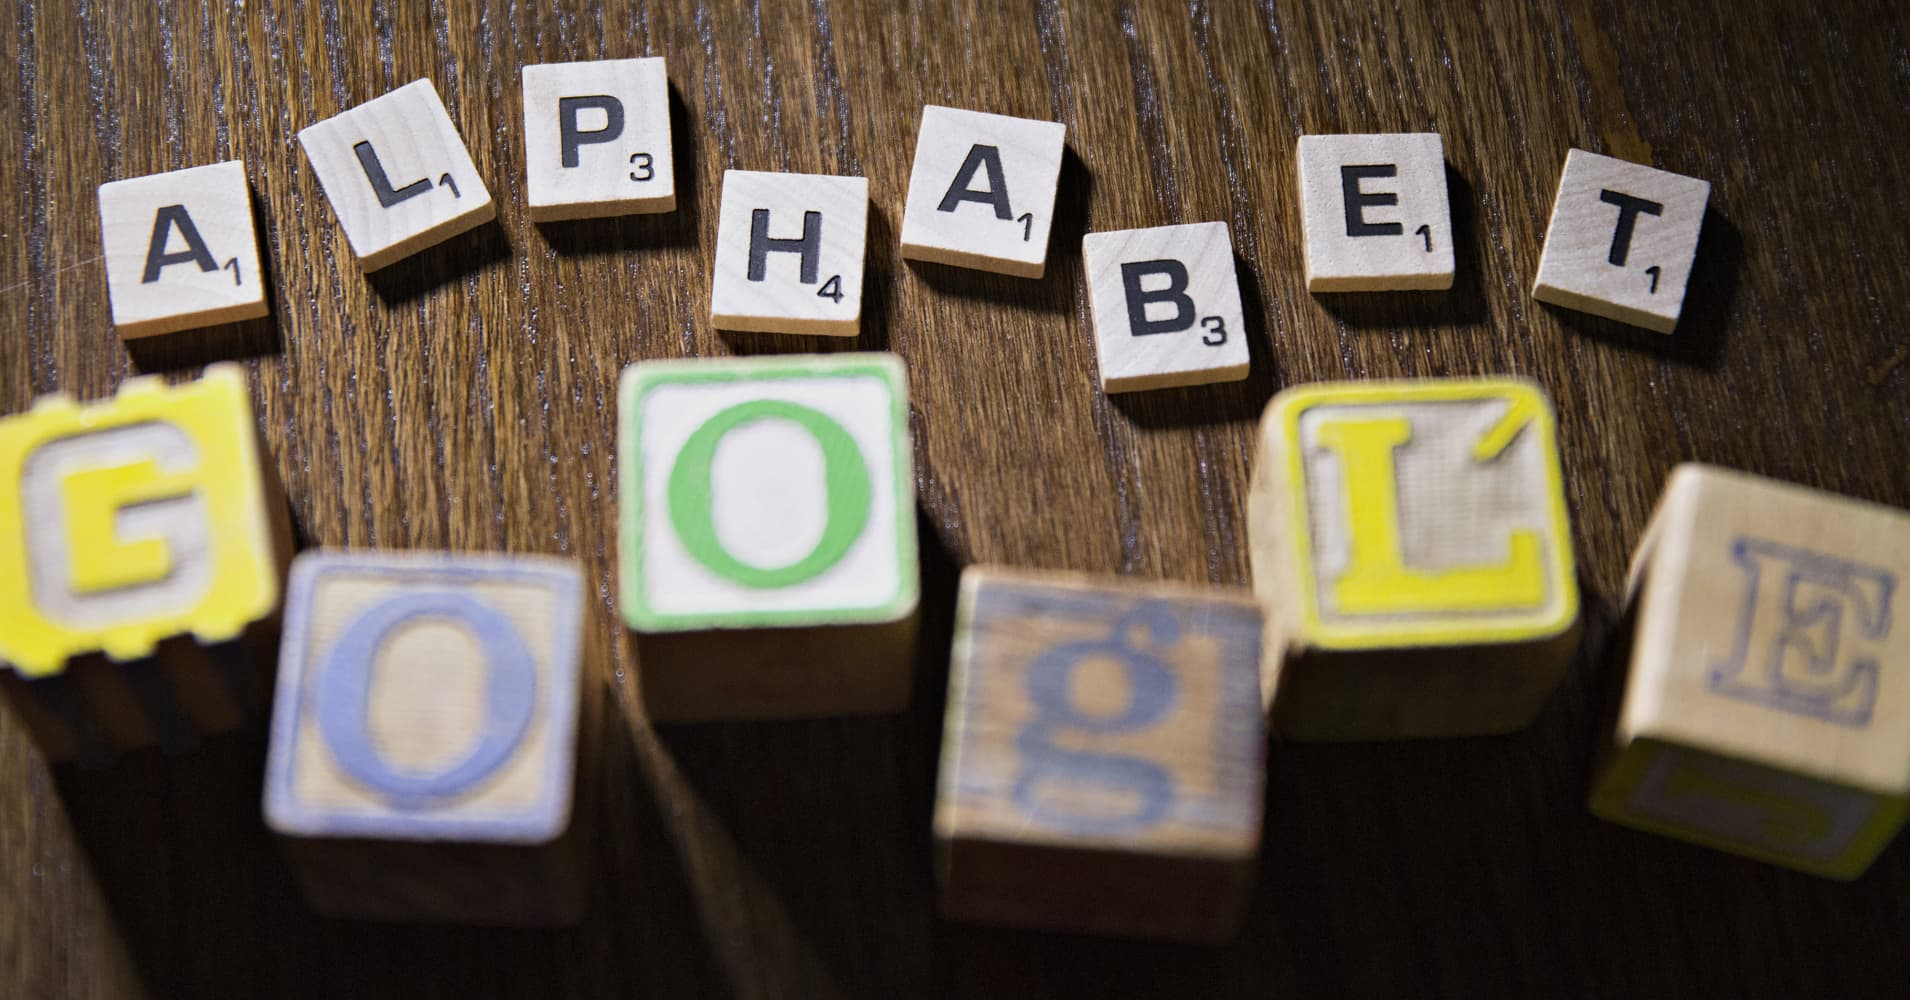 Google parent Alphabet Q4 earnings results